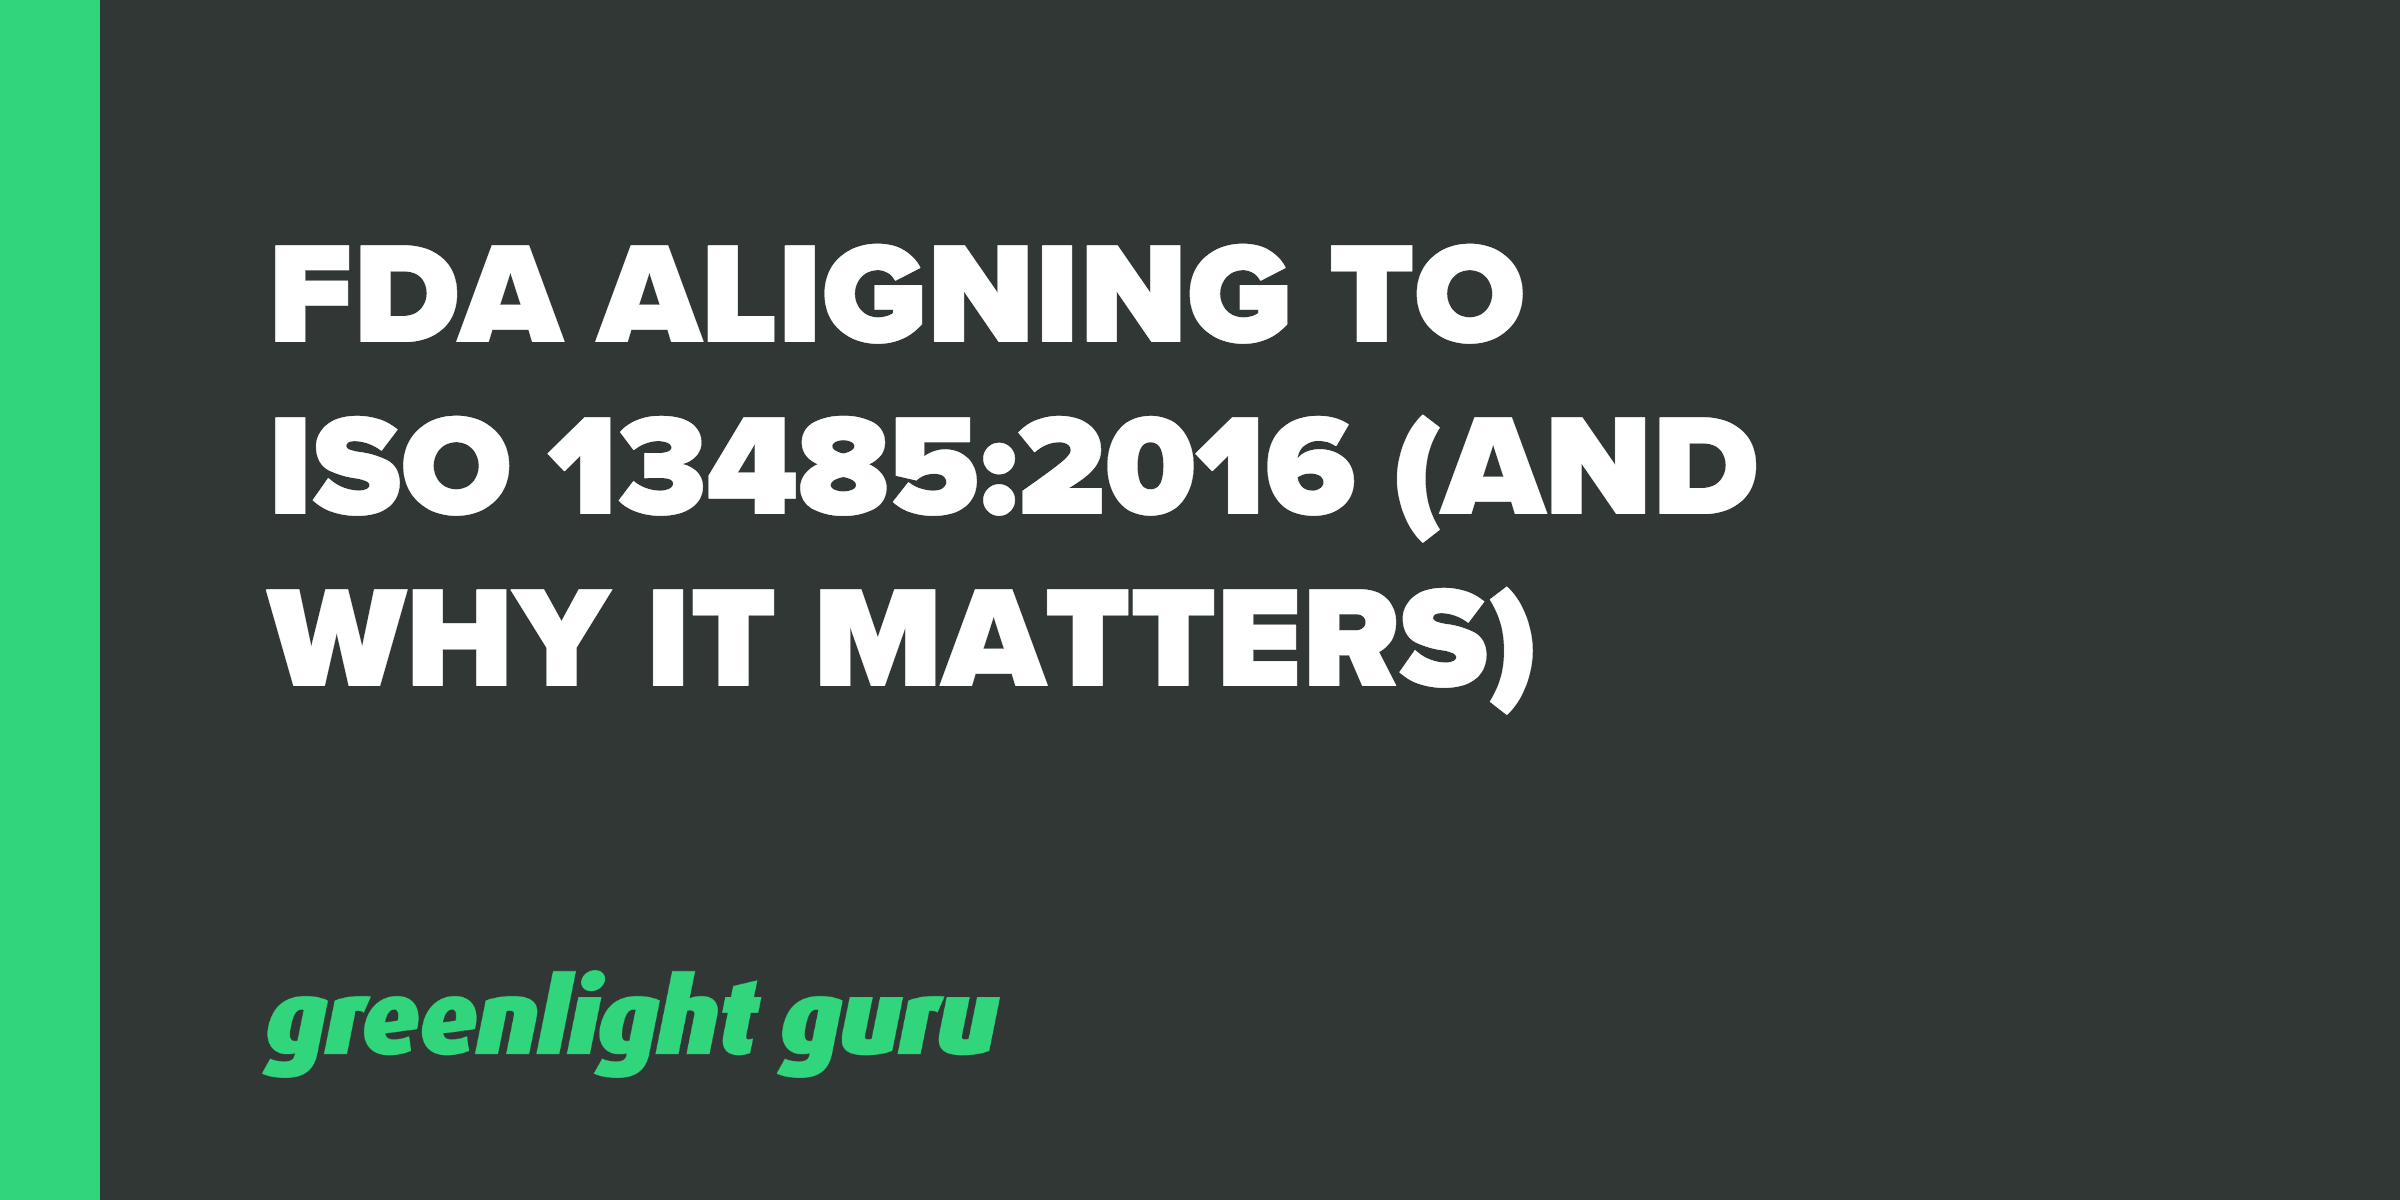 FDA Aligning to ISO 13485:2016 (and Why It Matters) - Featured Image